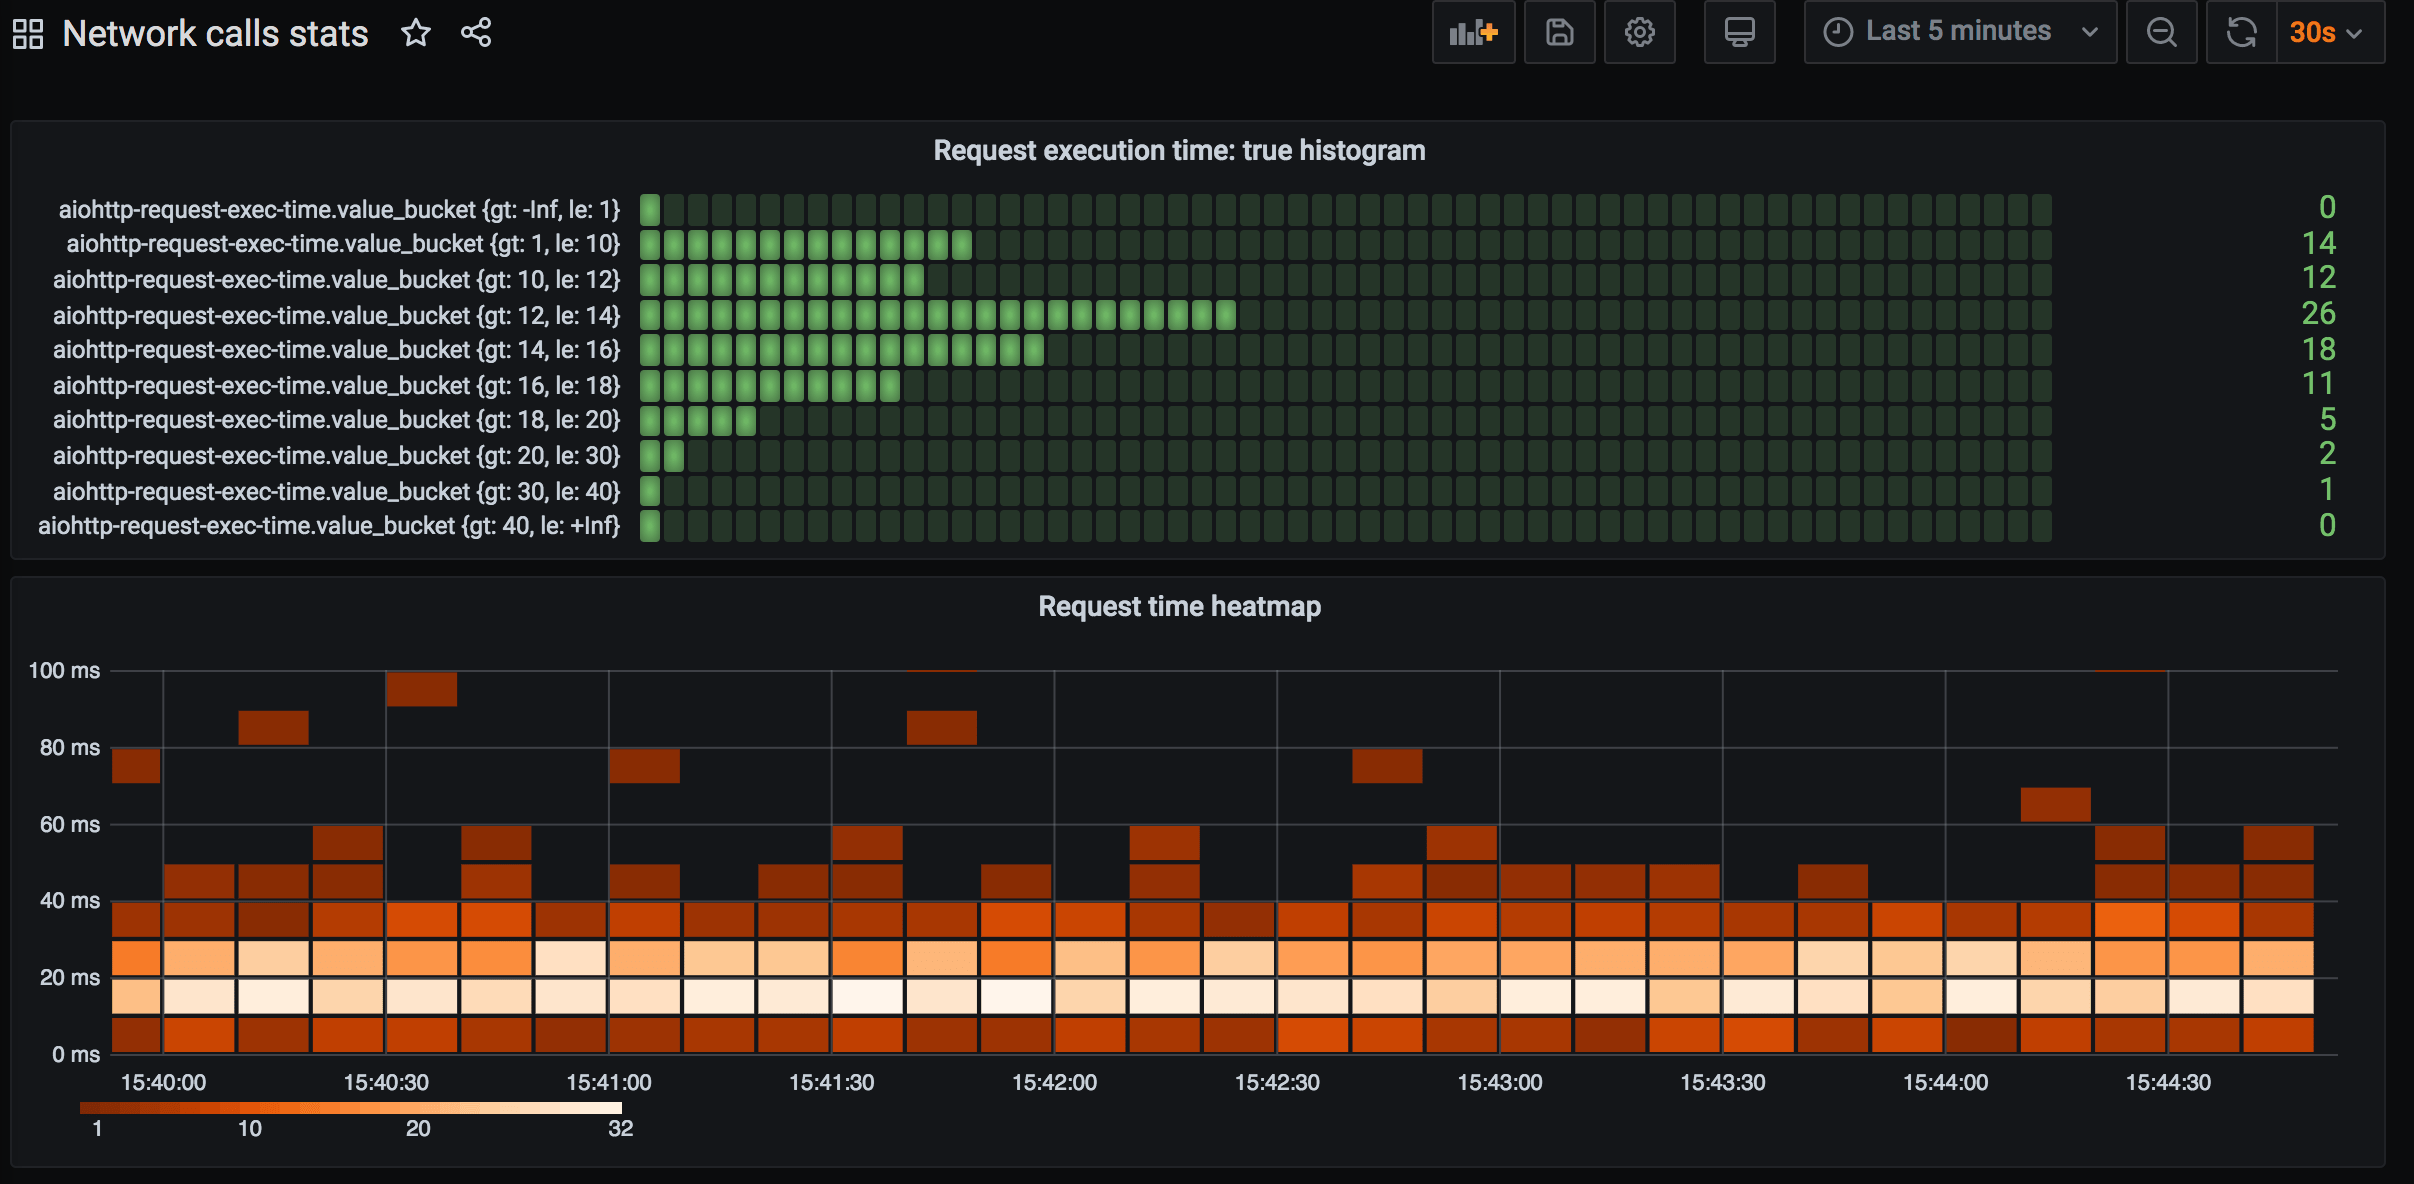 Histogram and heatmap